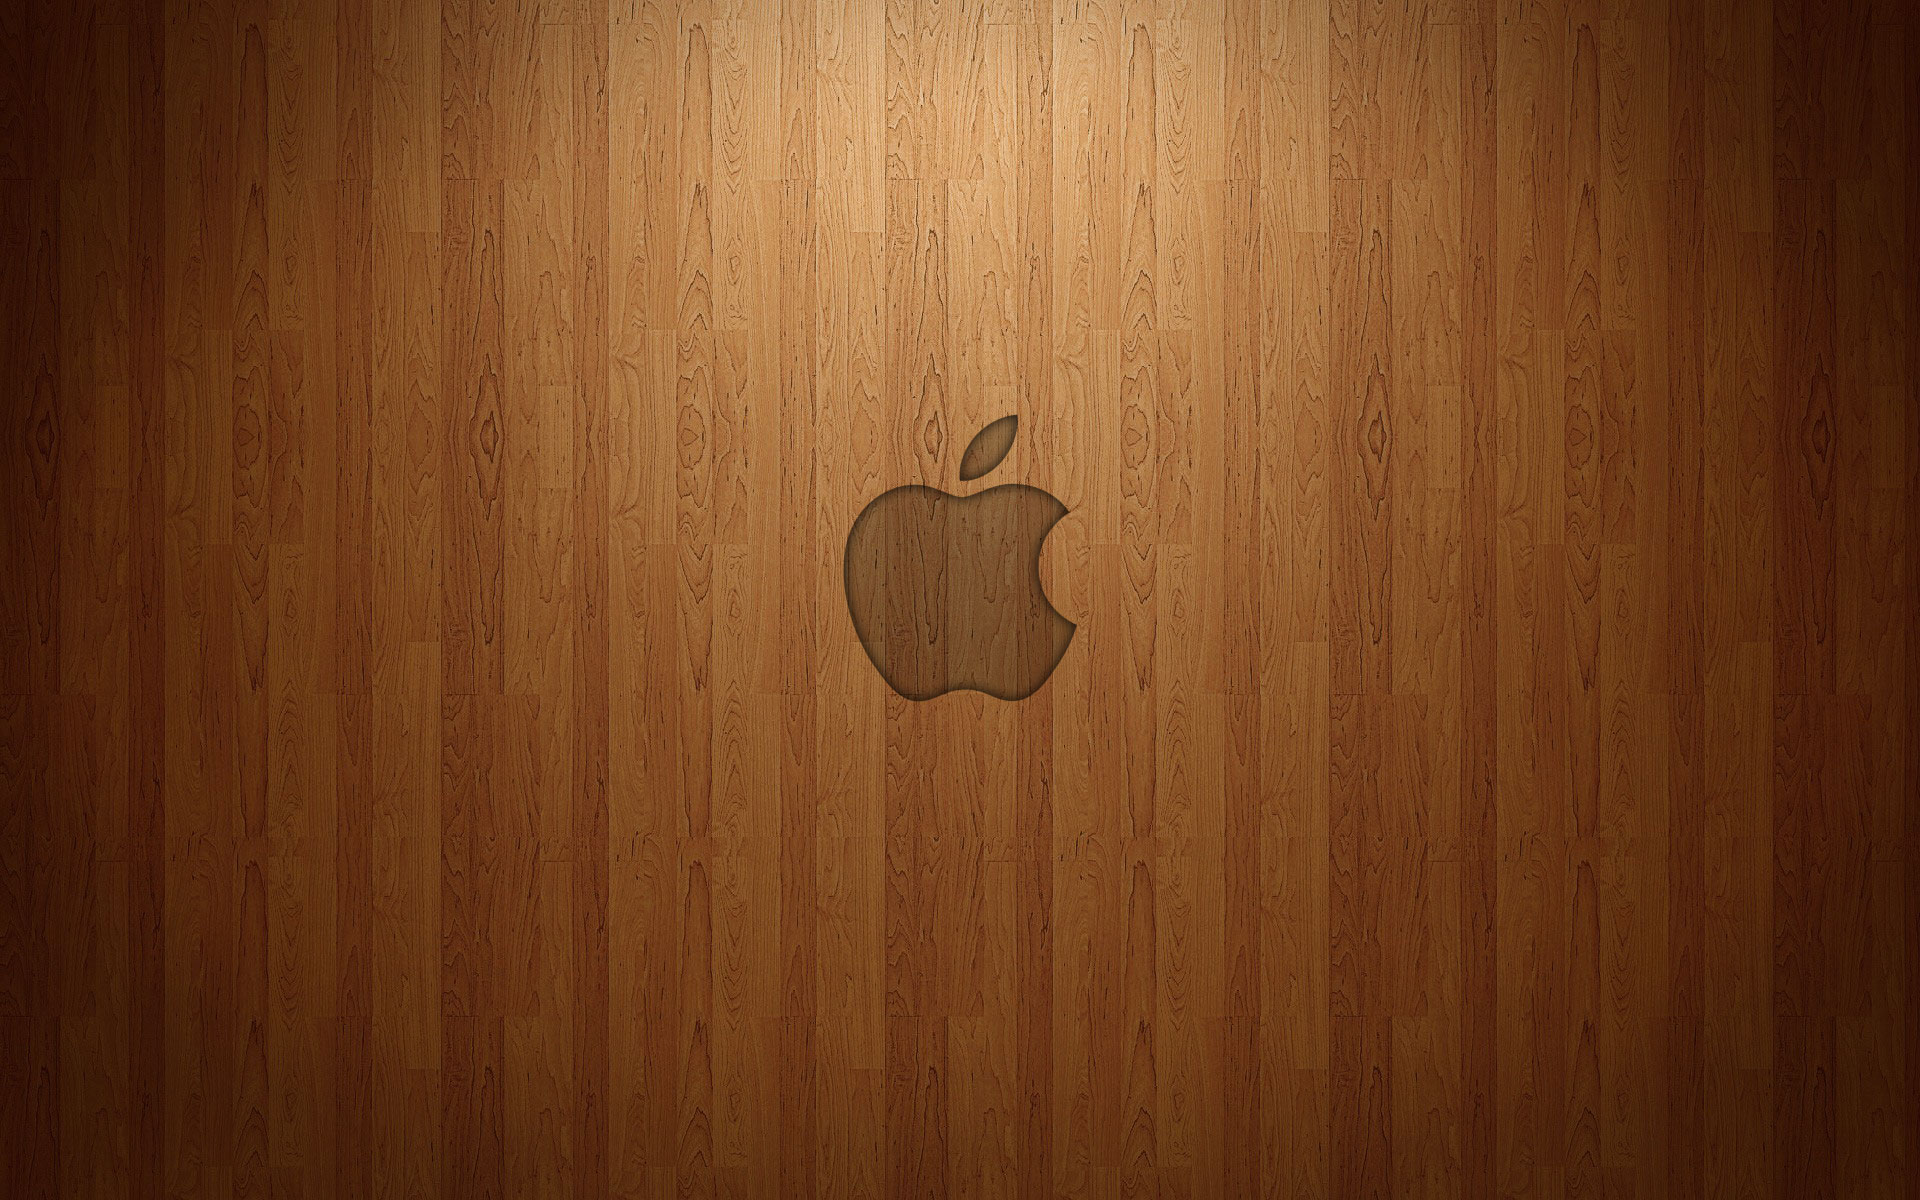 Backgrounds Apple Group (83+)